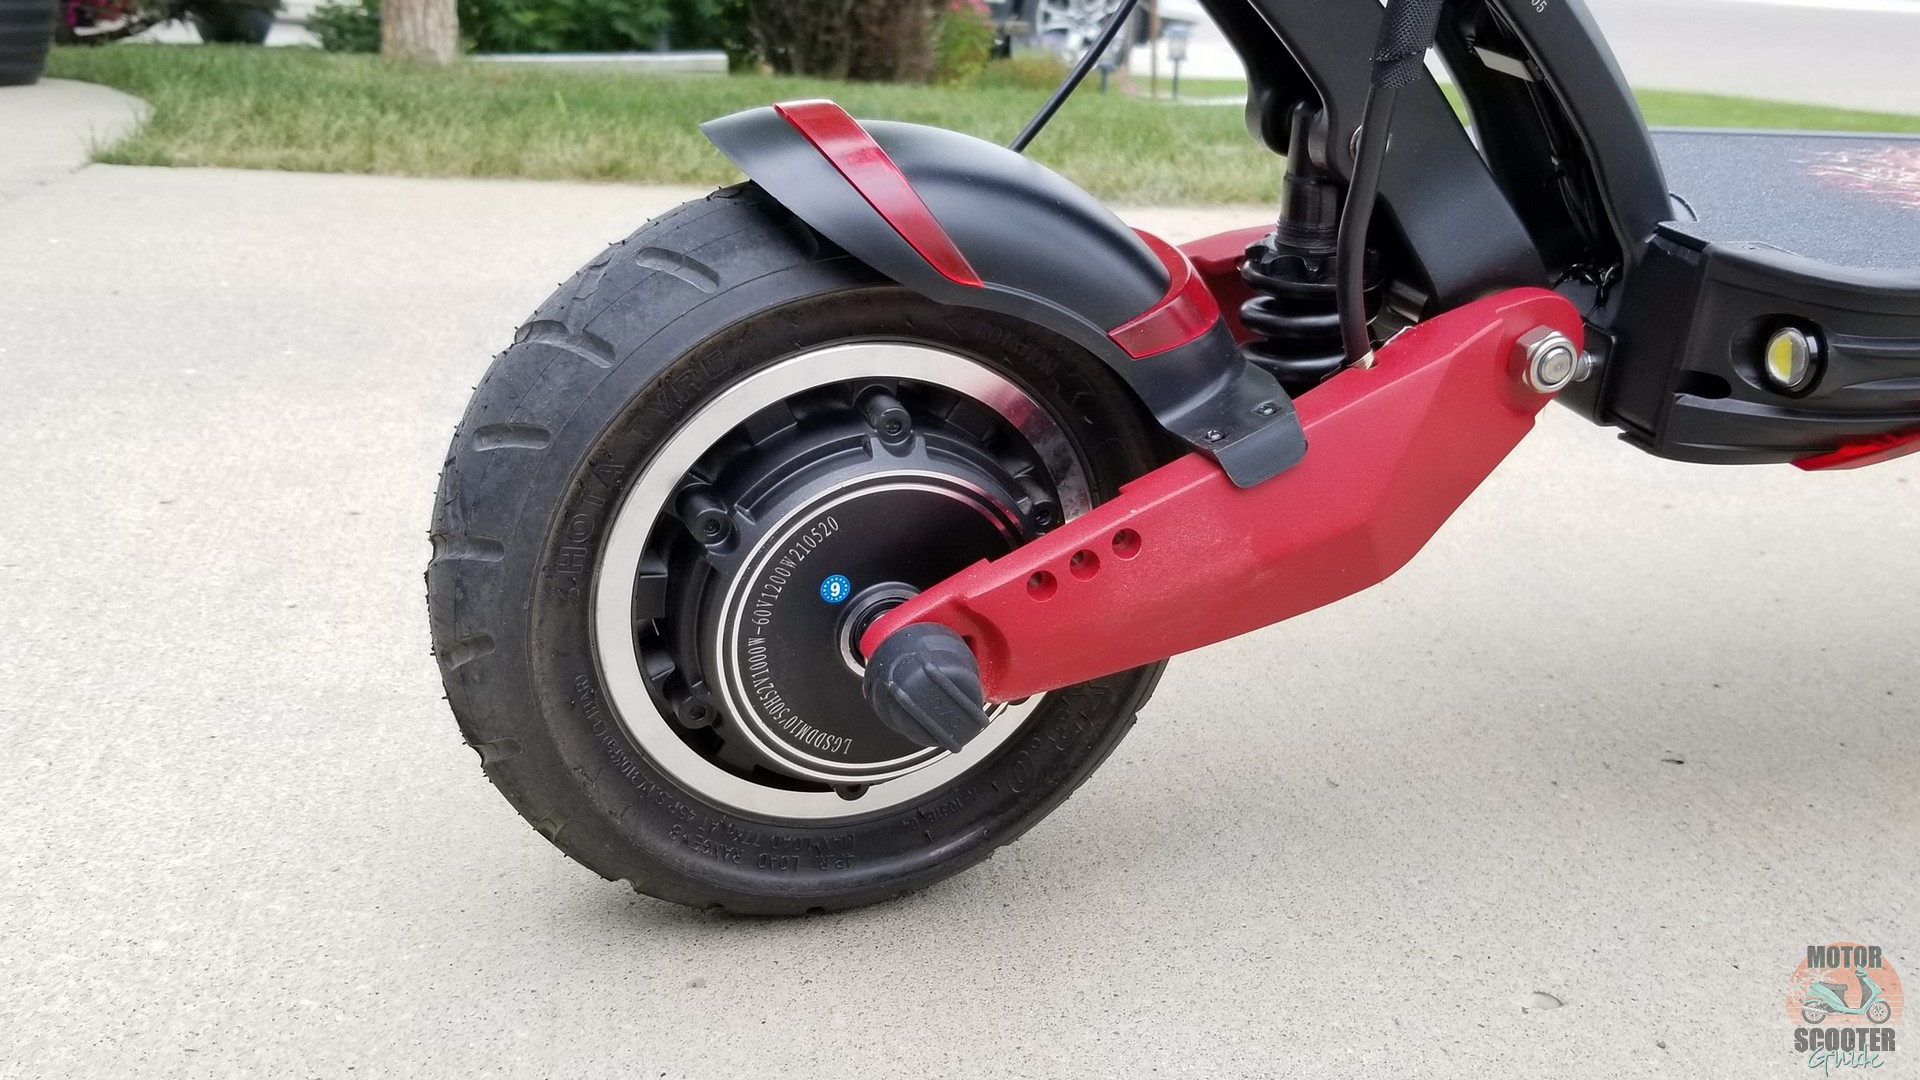 Rear 1000w hub motor on the Eagle One scooter